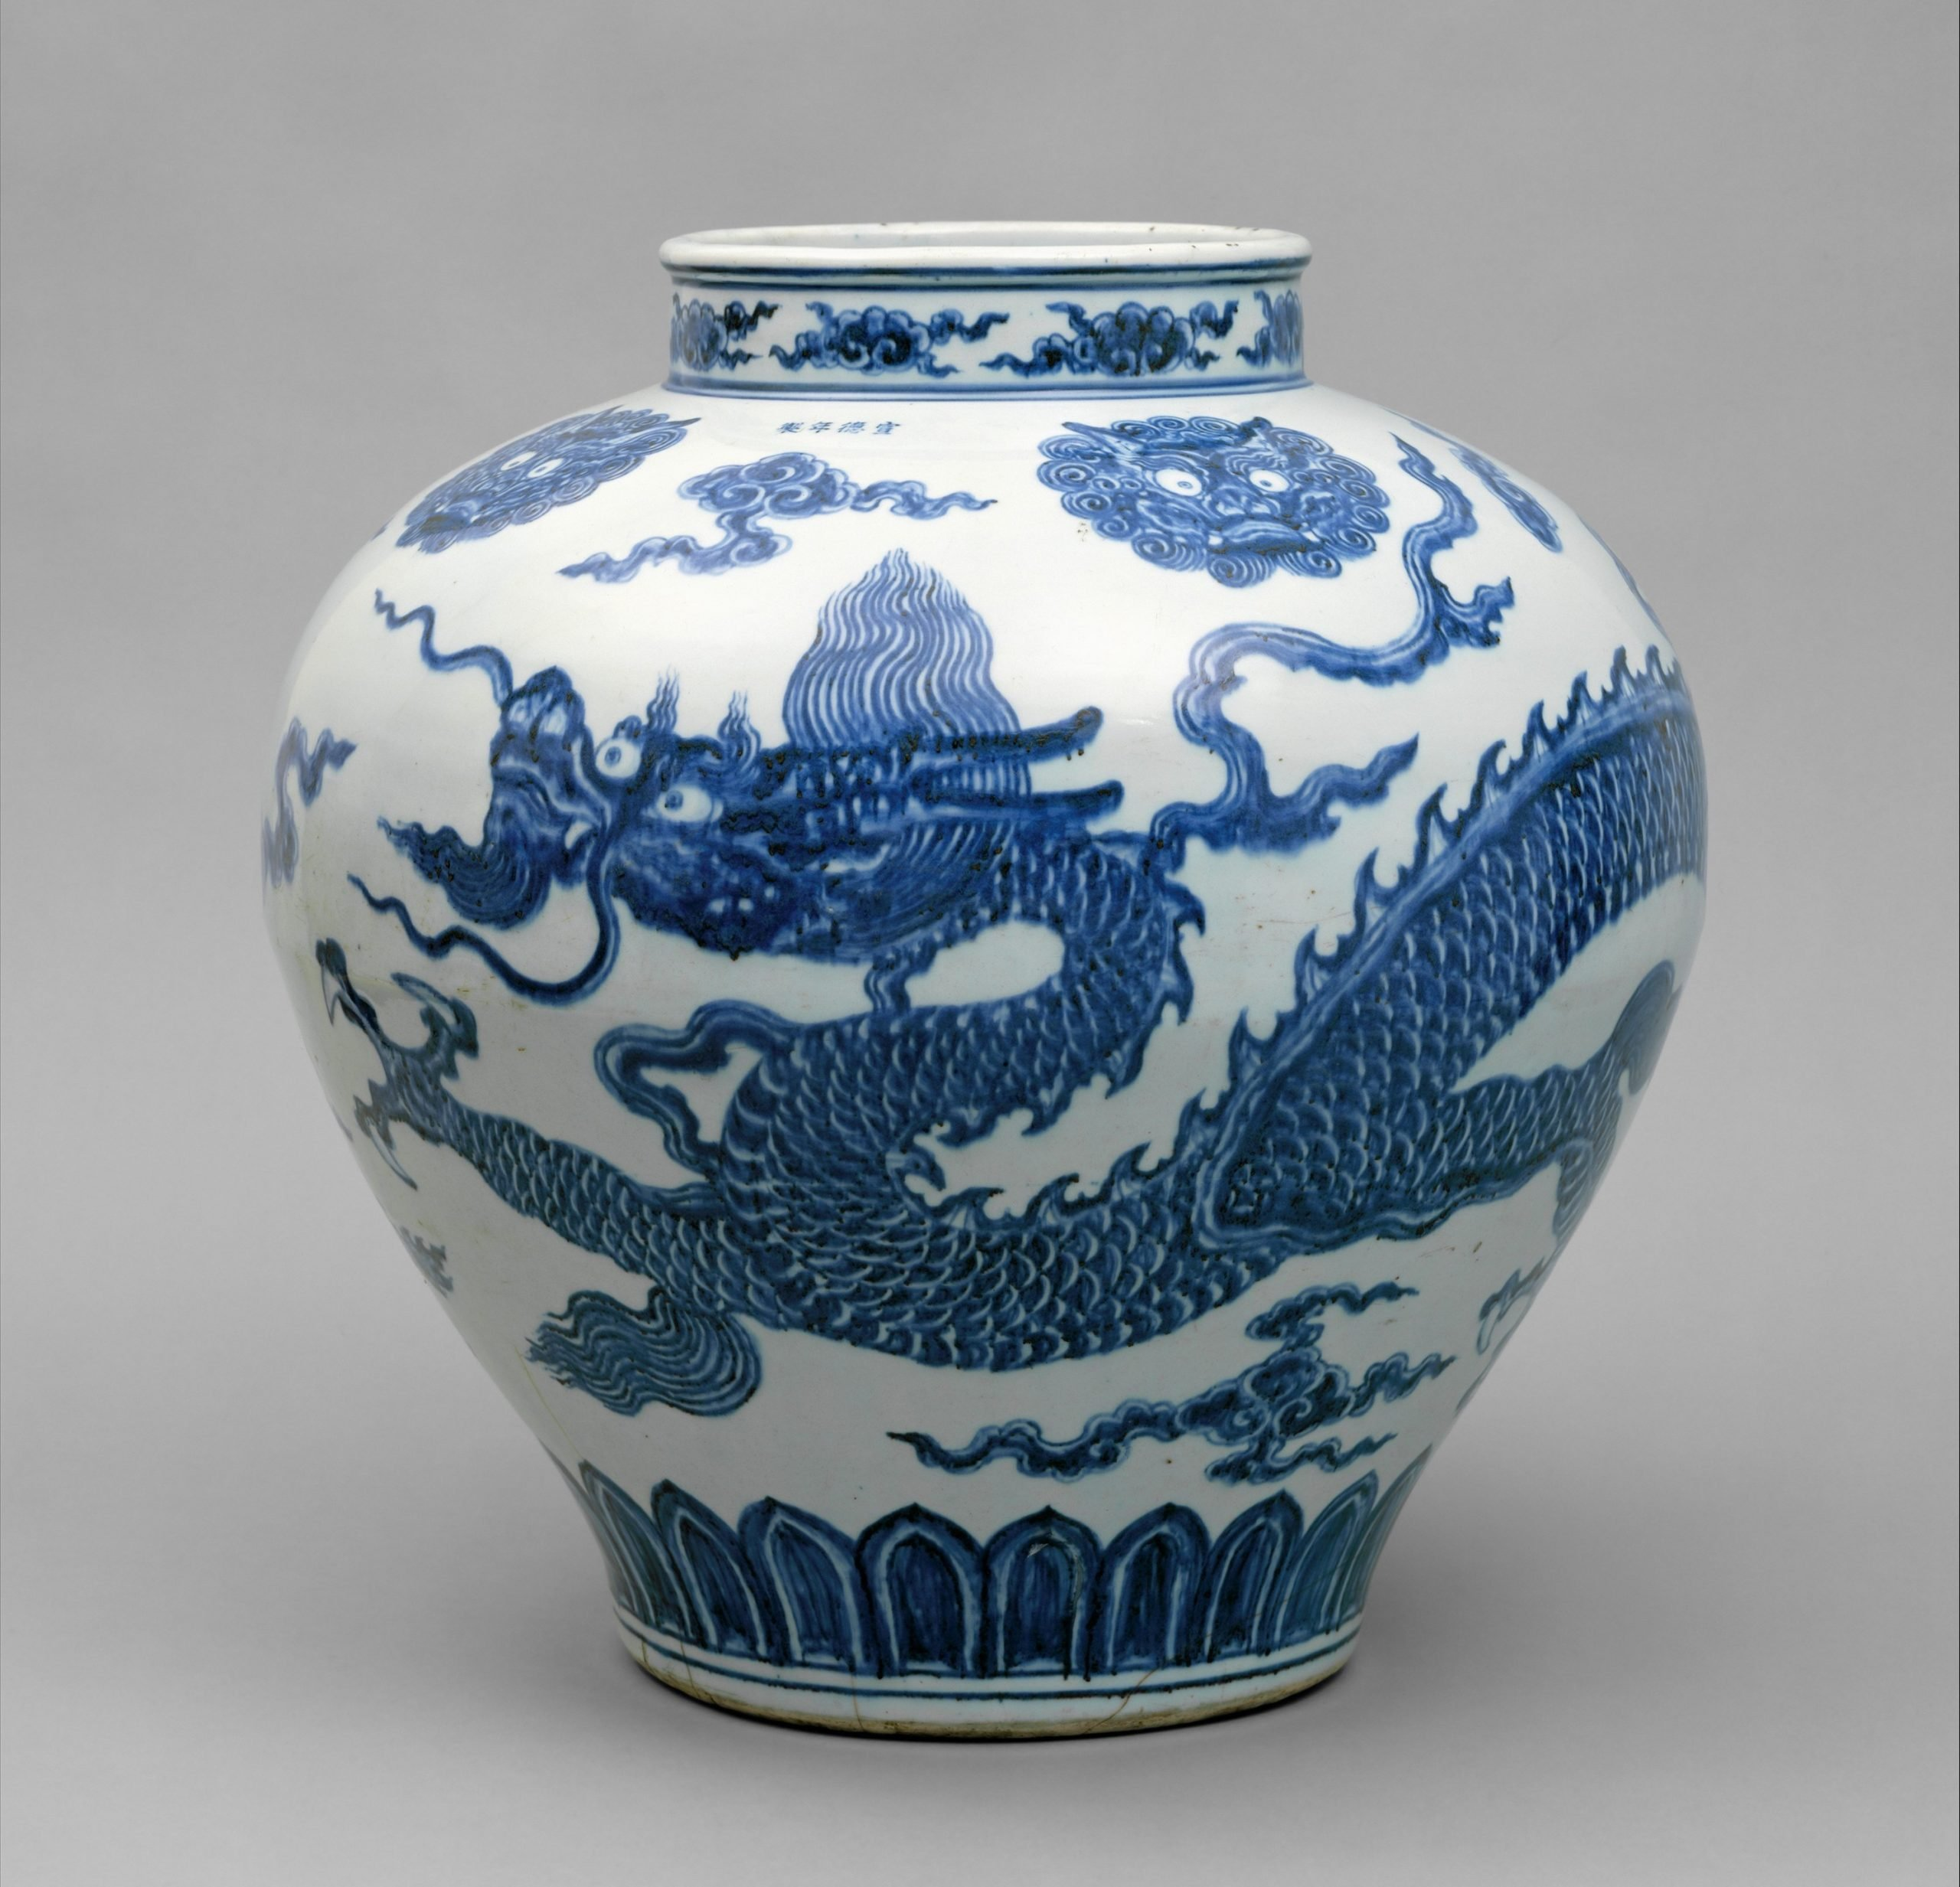 Museum image of a 15th century Chinese vase, painted with a blue and white dragon